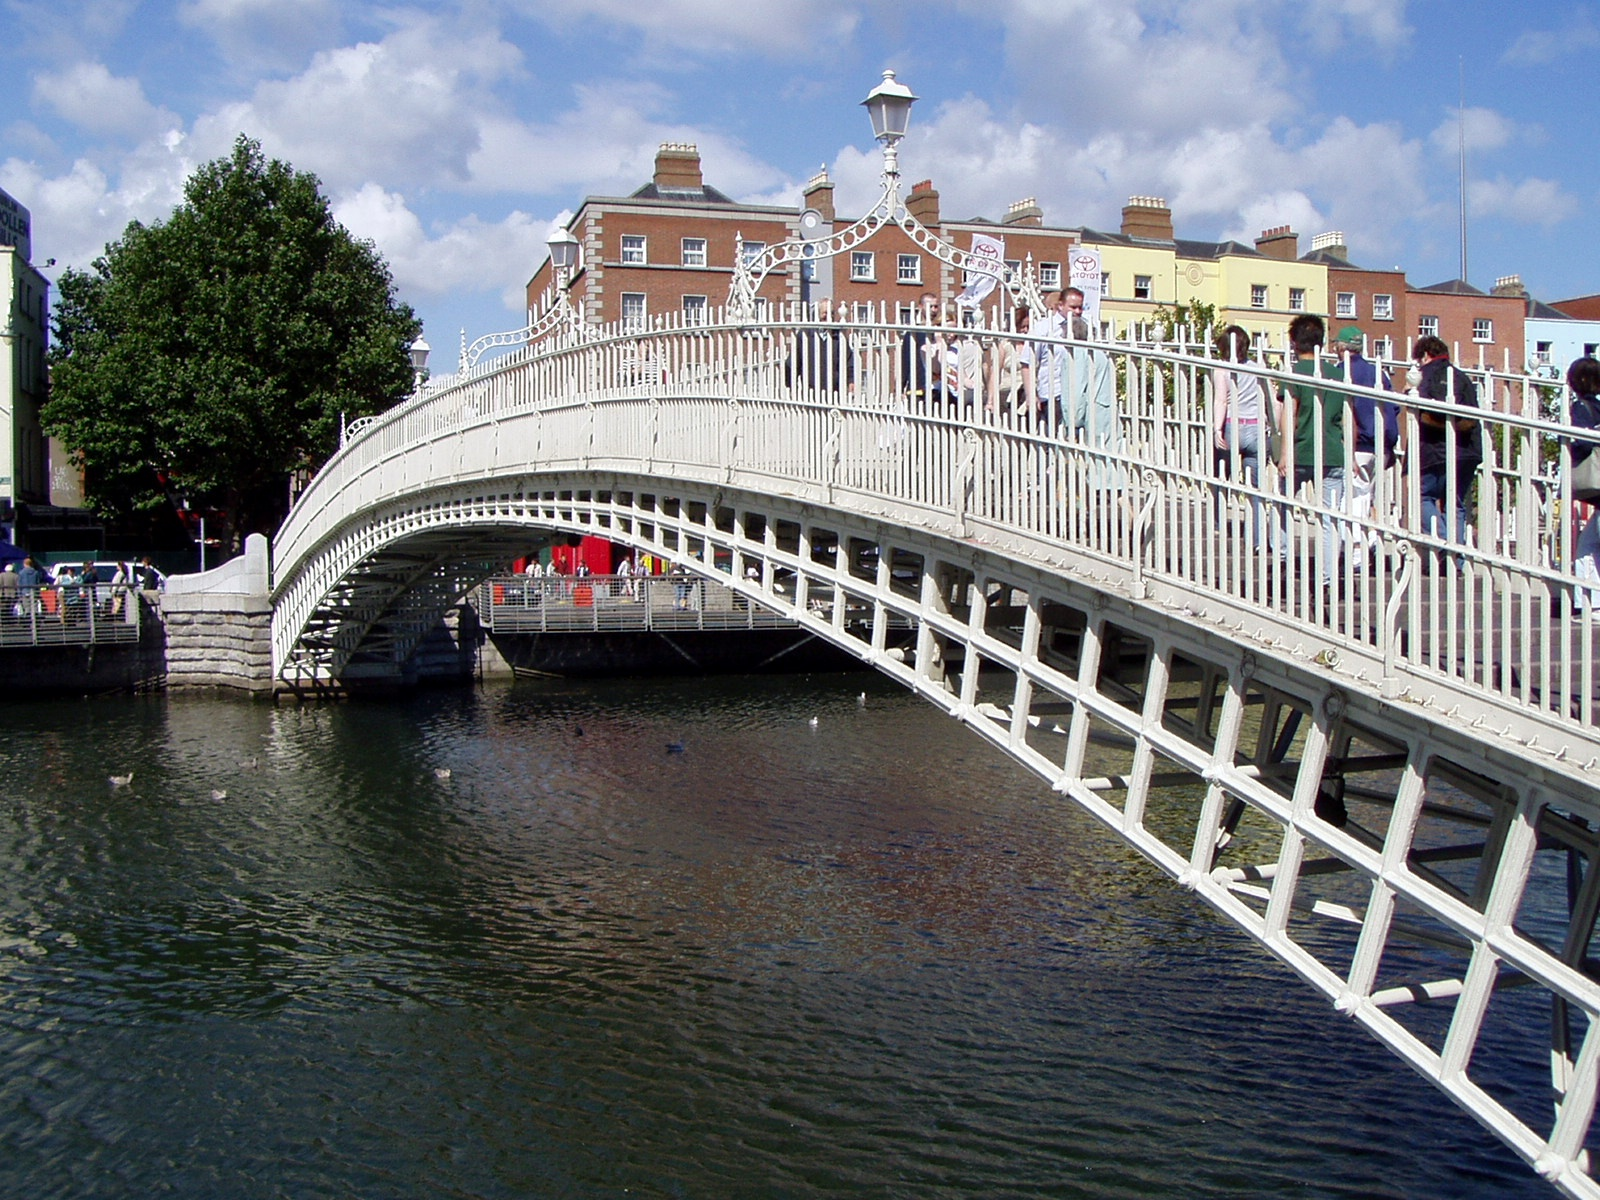 River Liffey Bridges, Dublin, Ireland | Best Dublin ireland ...